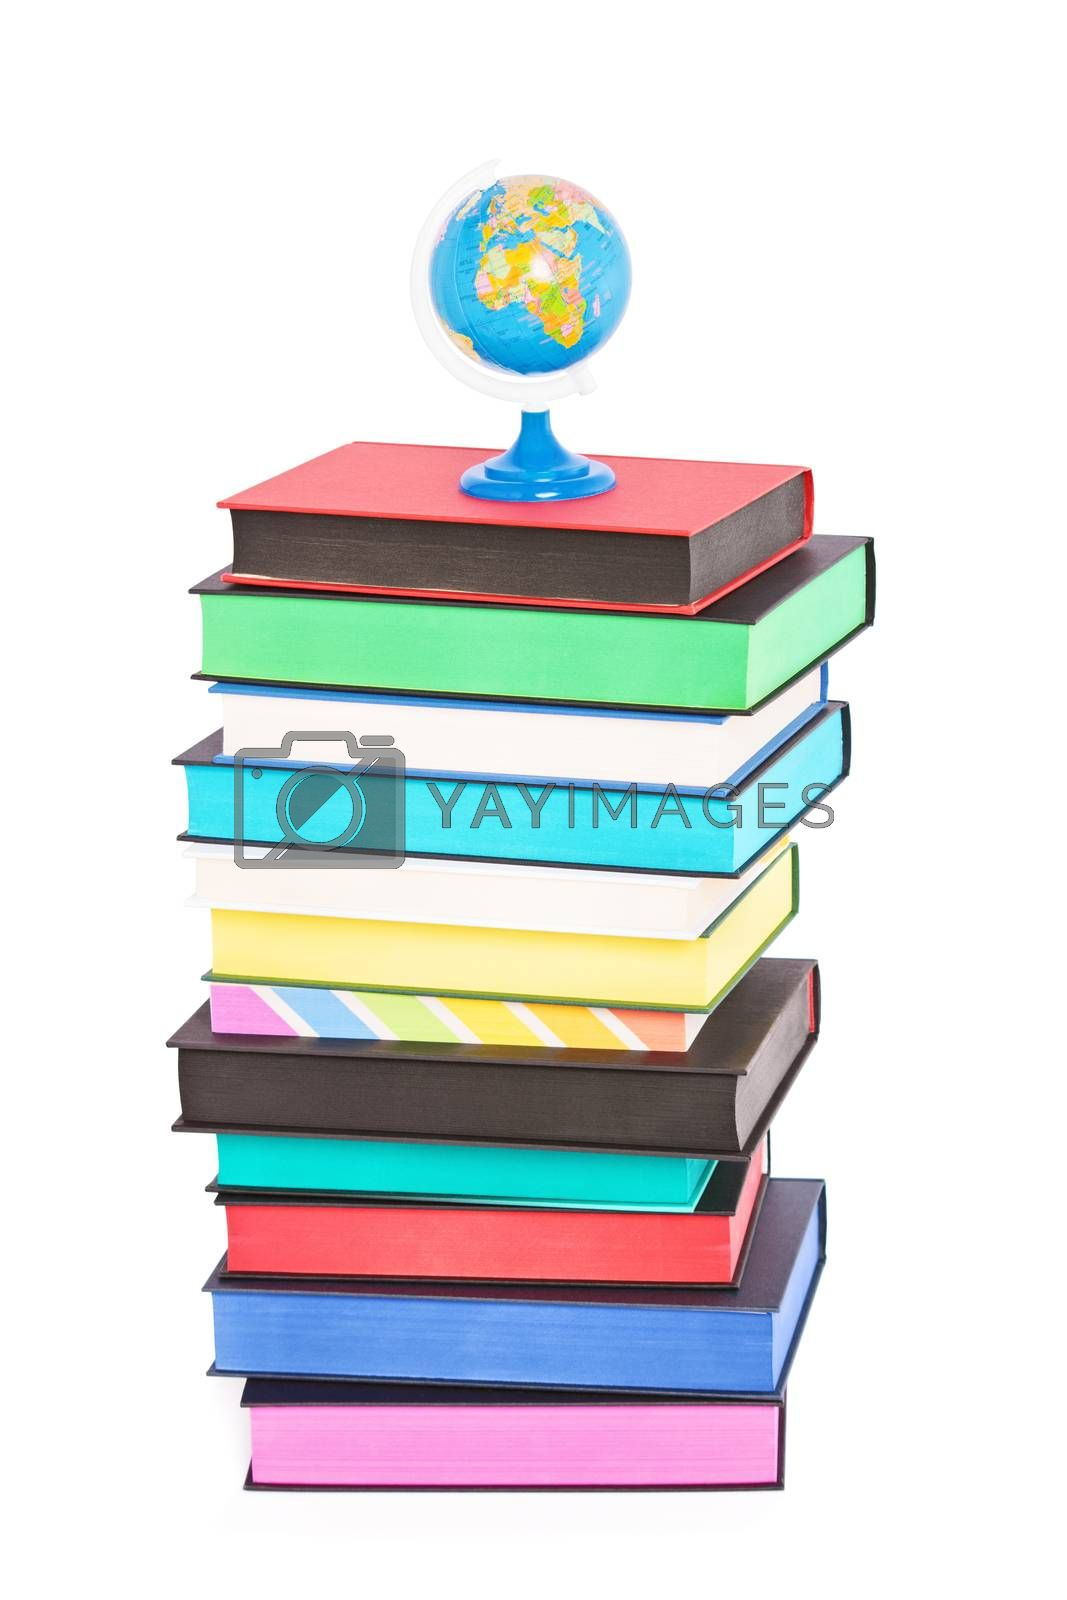 A globe on top of stack of colorful books with different sprayed edges, isolated on white background. Education and travel concept.